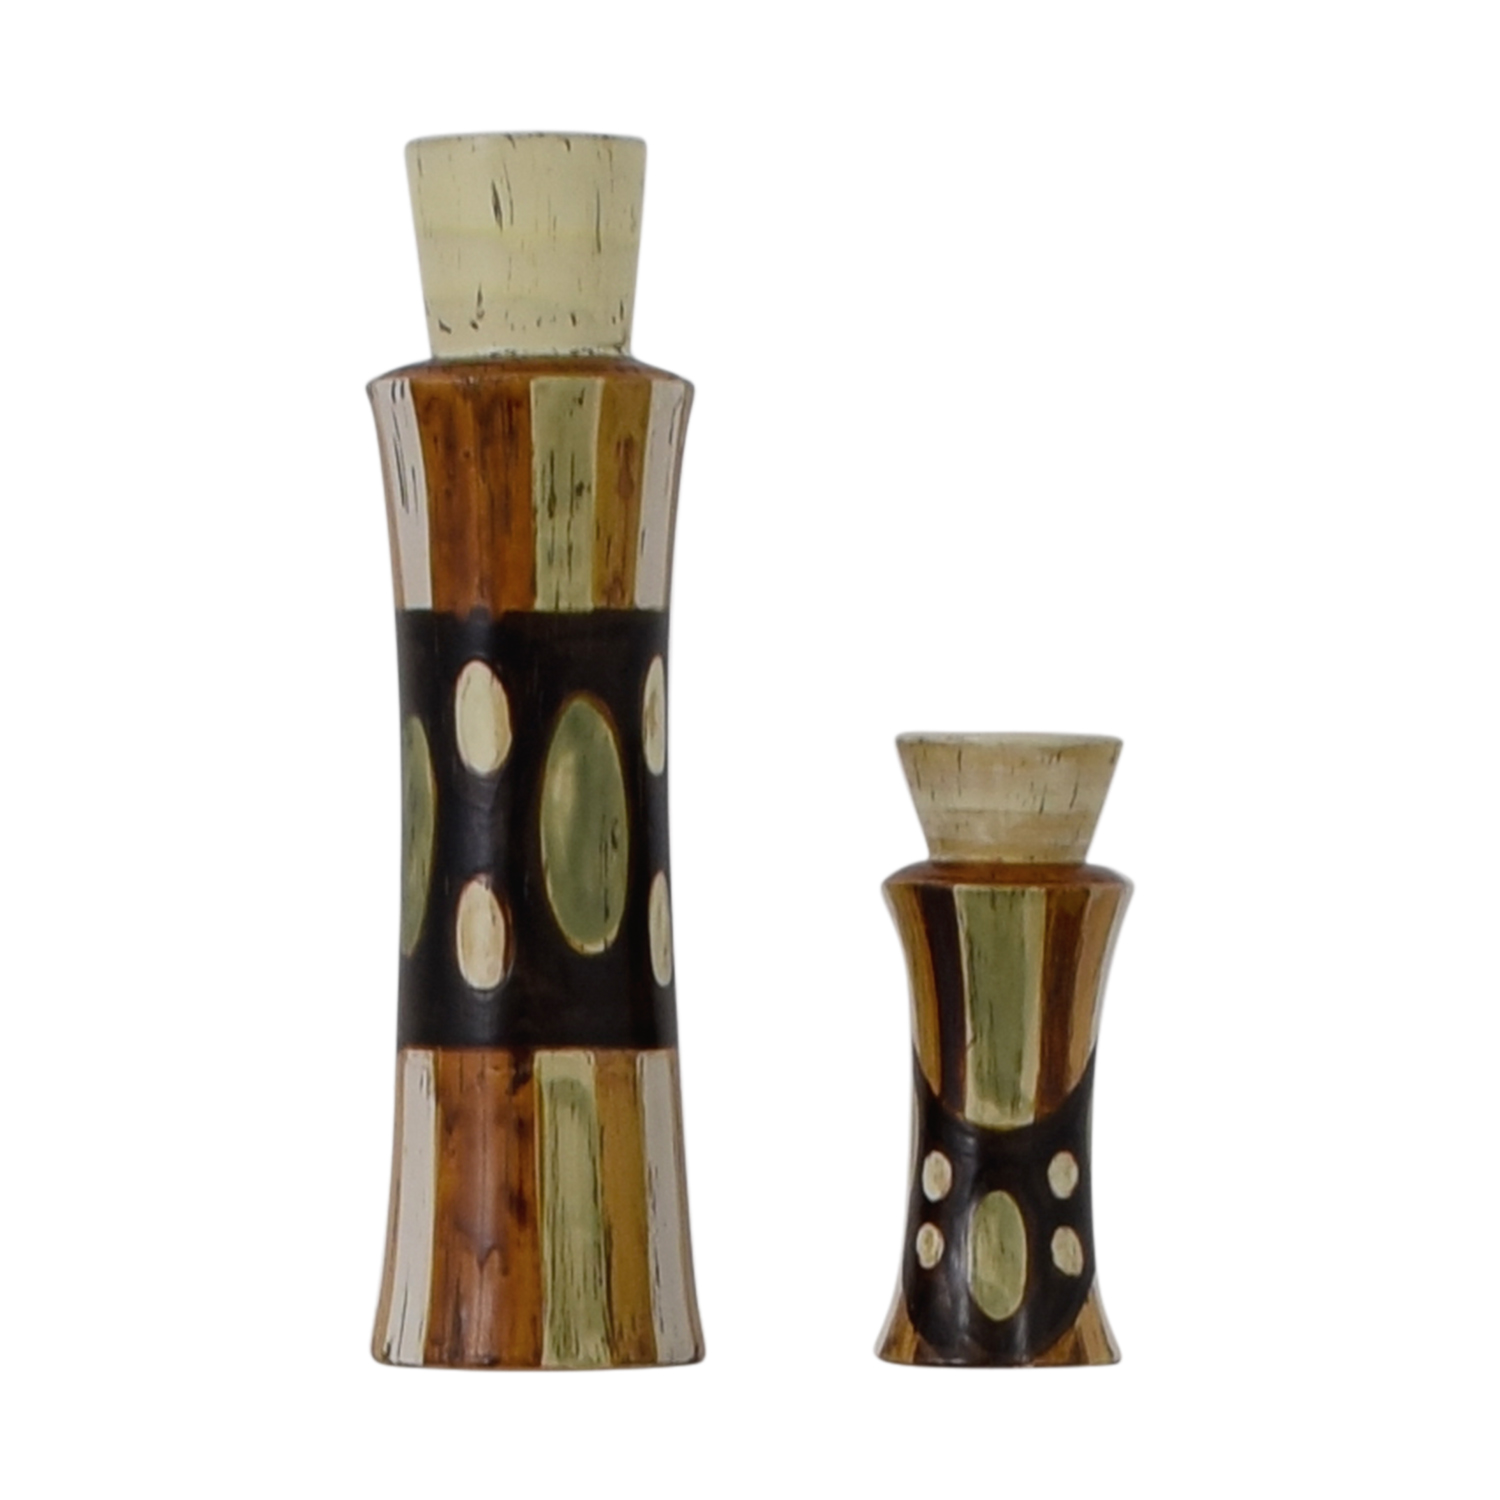 HomeGoods HomeGoods Ceramic Vase and Pillar Candle Holder